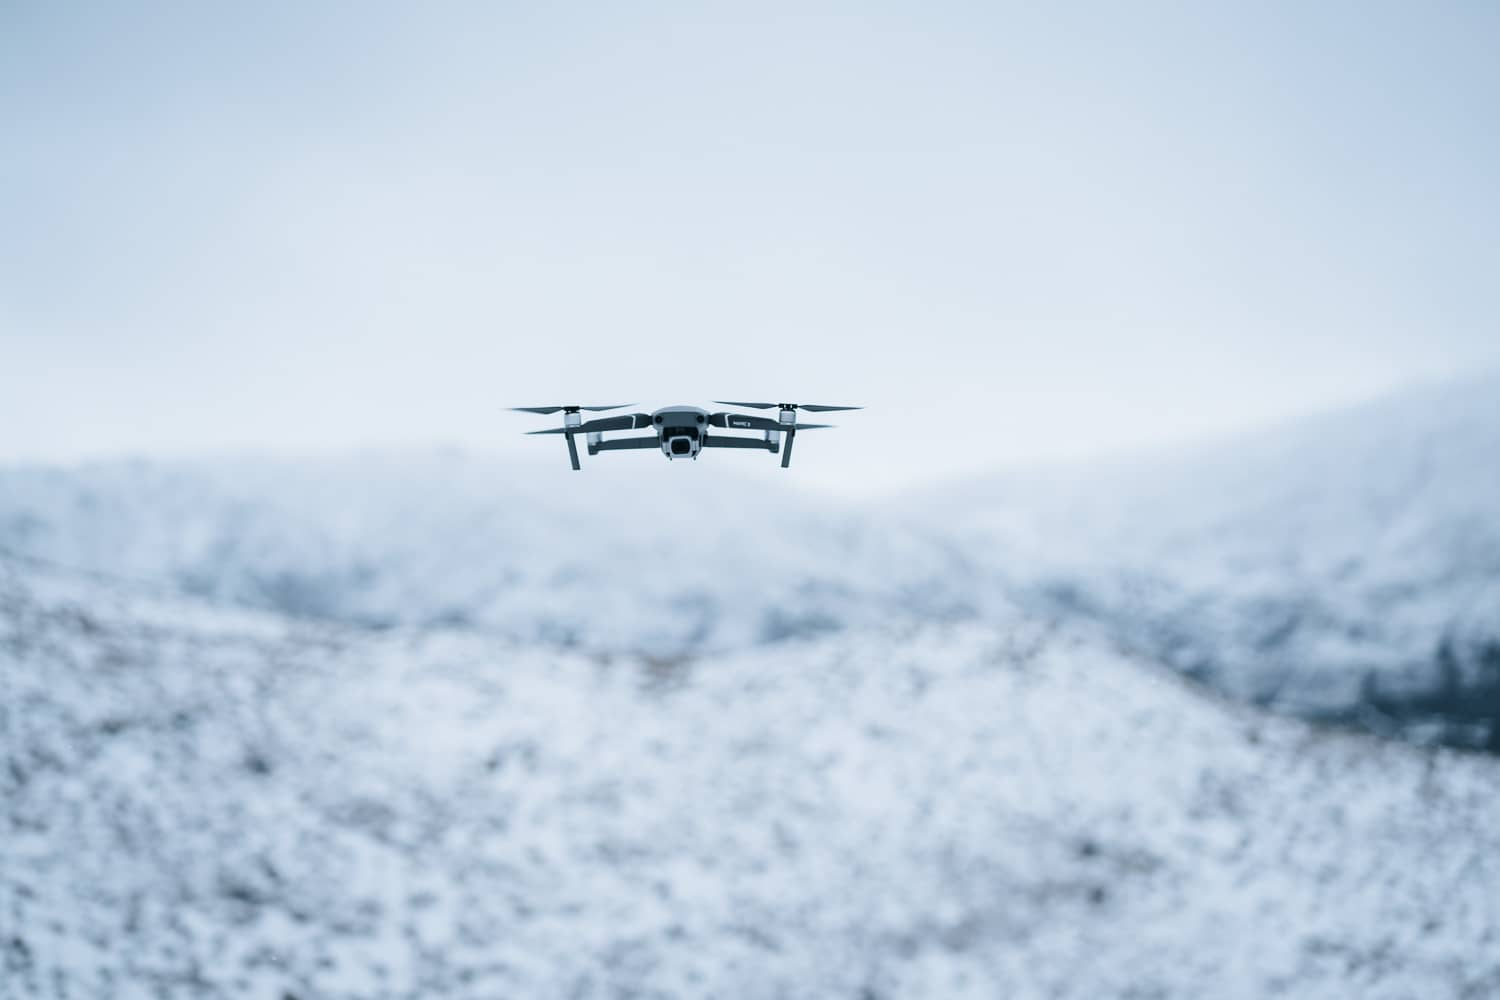 drone in the air in winter